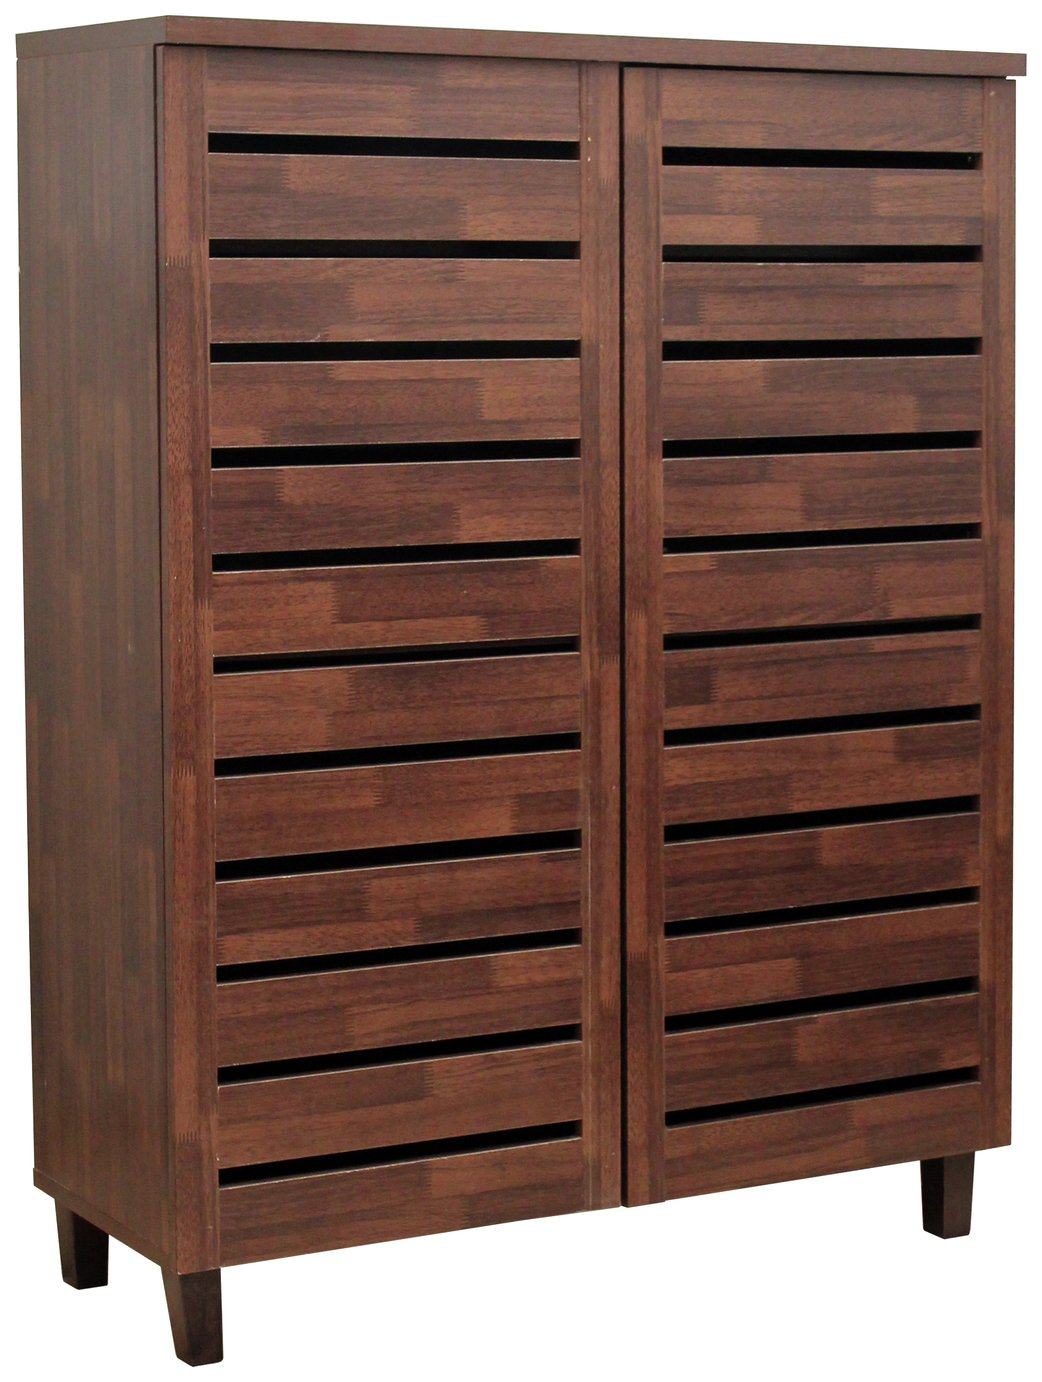 Argos Home Large Slatted Shoe Cabinet - Mahogany Effect